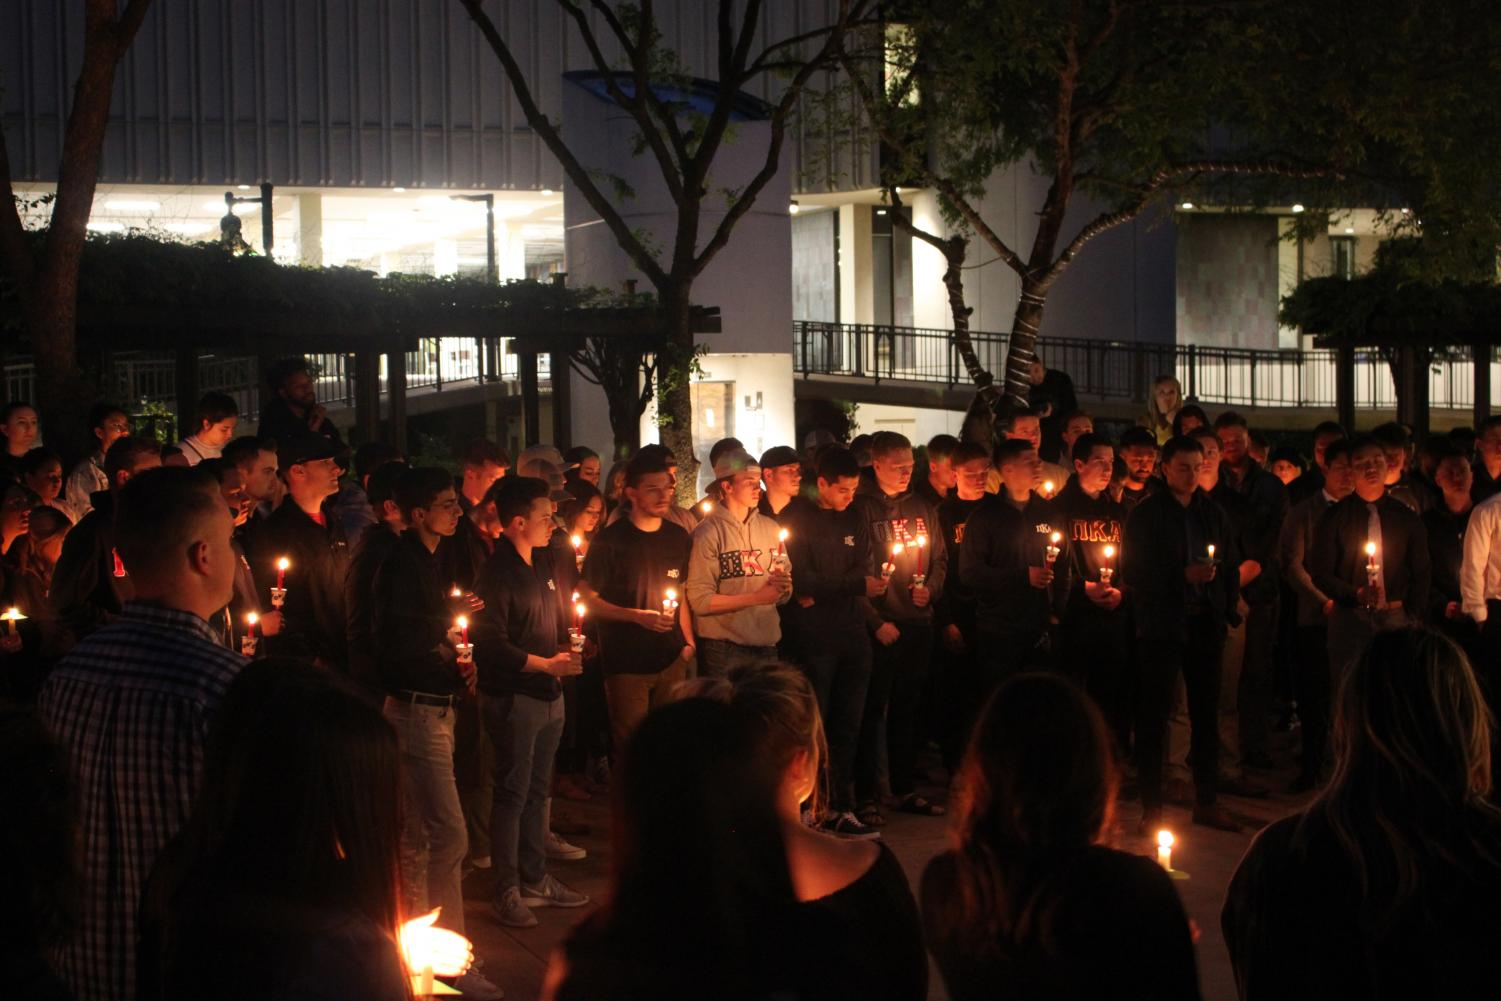 Brothers of the Pi Kappa Alpha fraternity at Sac State hold a vigil for William Molina, the 21-year-old student who died in a pellet gun shooting on Friday morning. Among the vigil's attendees were other Sac State Greek members and President Robert Nelsen.